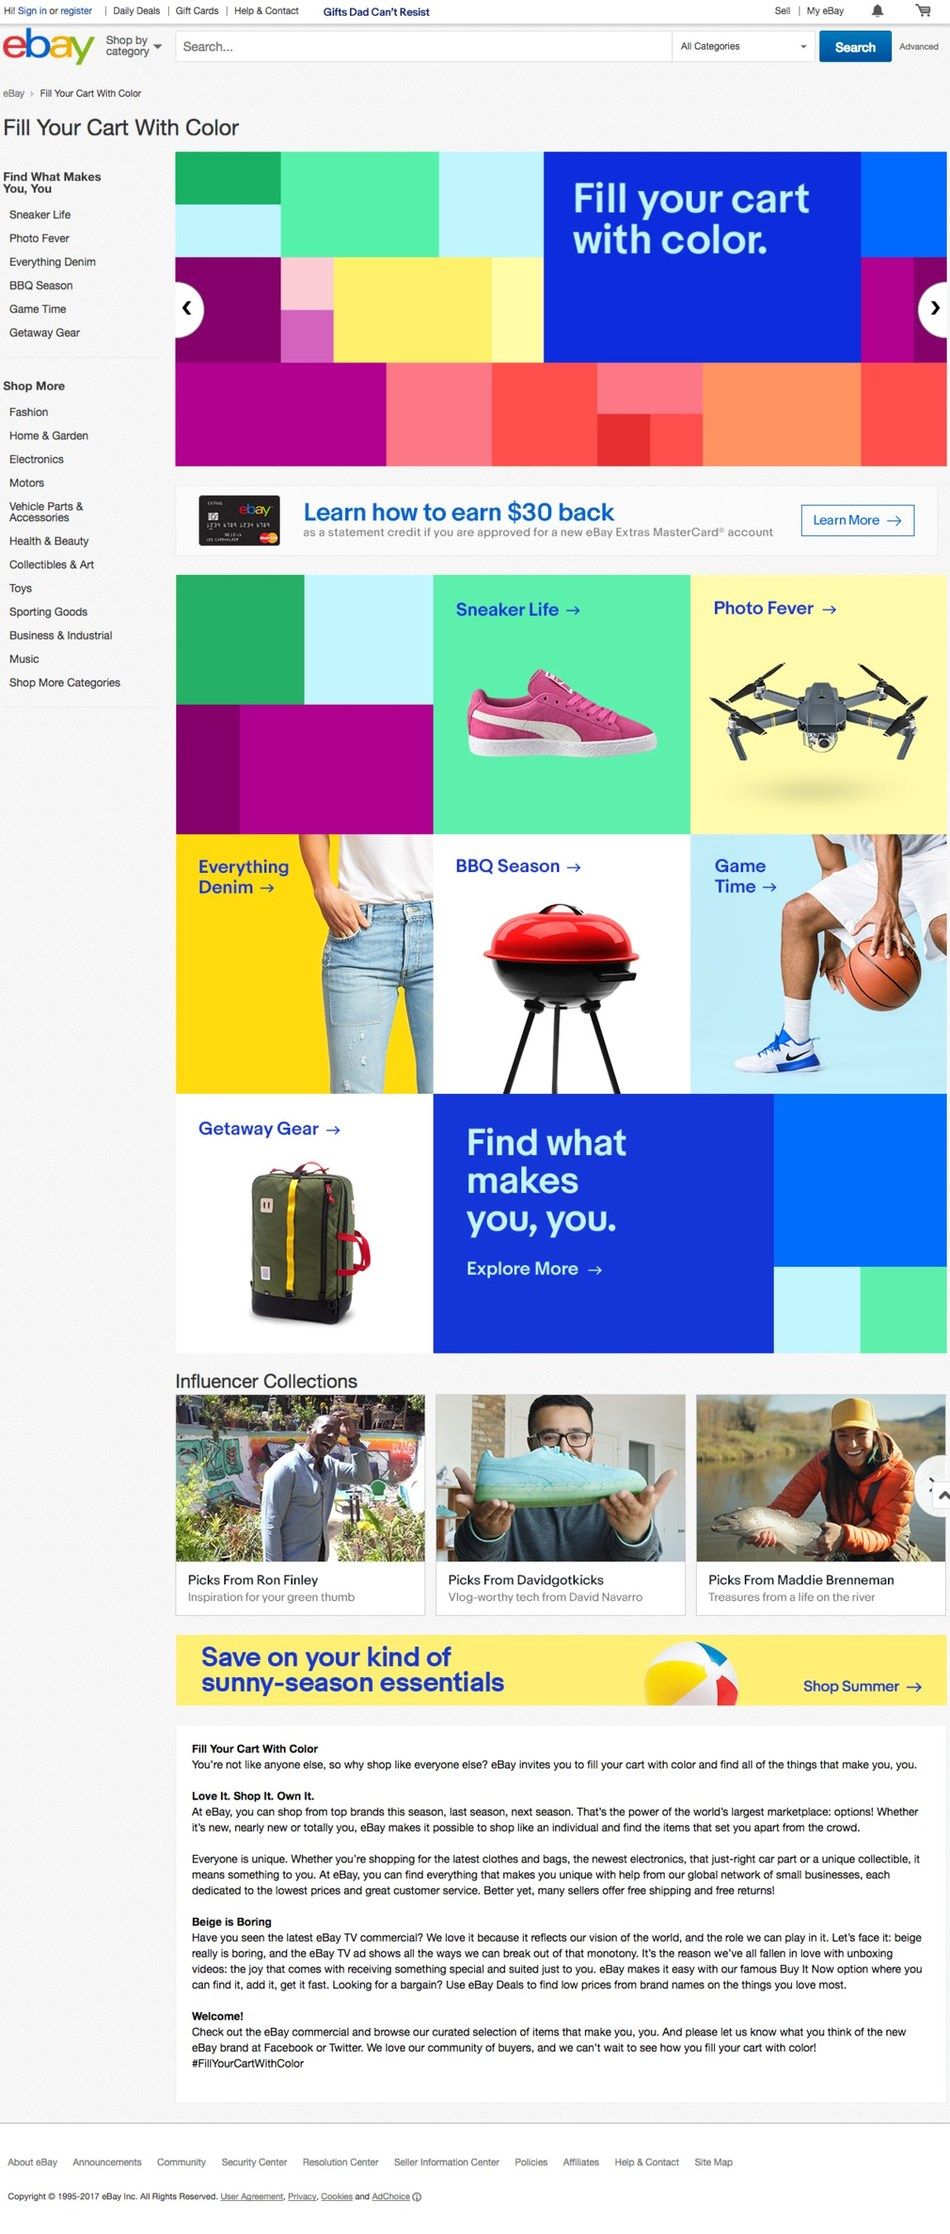 """eBay launches a new brand platform """"Fill Your Cart with Color"""" http://www.ebay.com/fill-your-cart-with-color"""